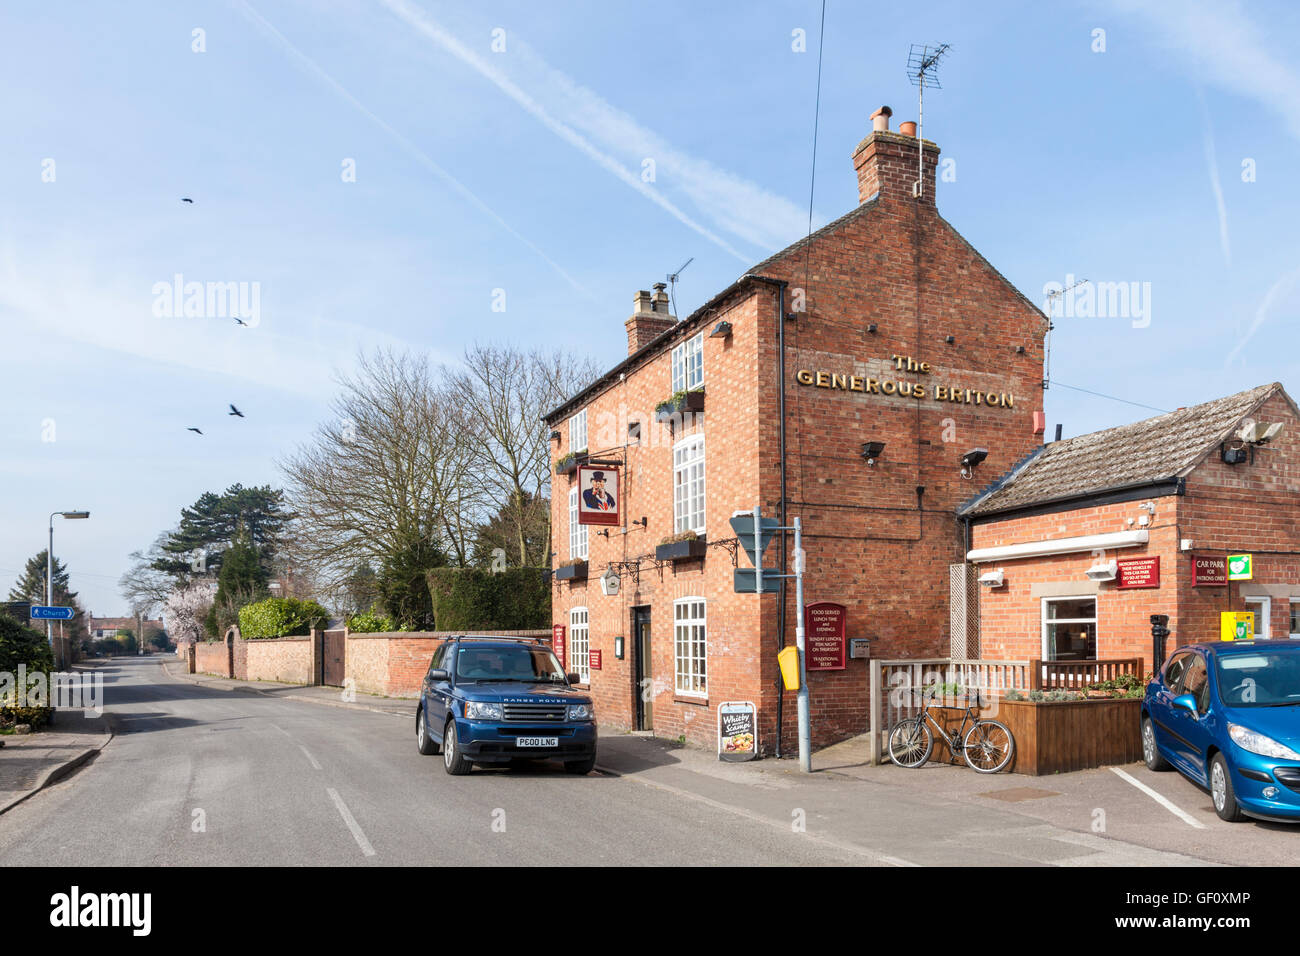 The Generous Briton pub on Main Street in the village of Costock, Nottinghamshire, England, UK - Stock Image